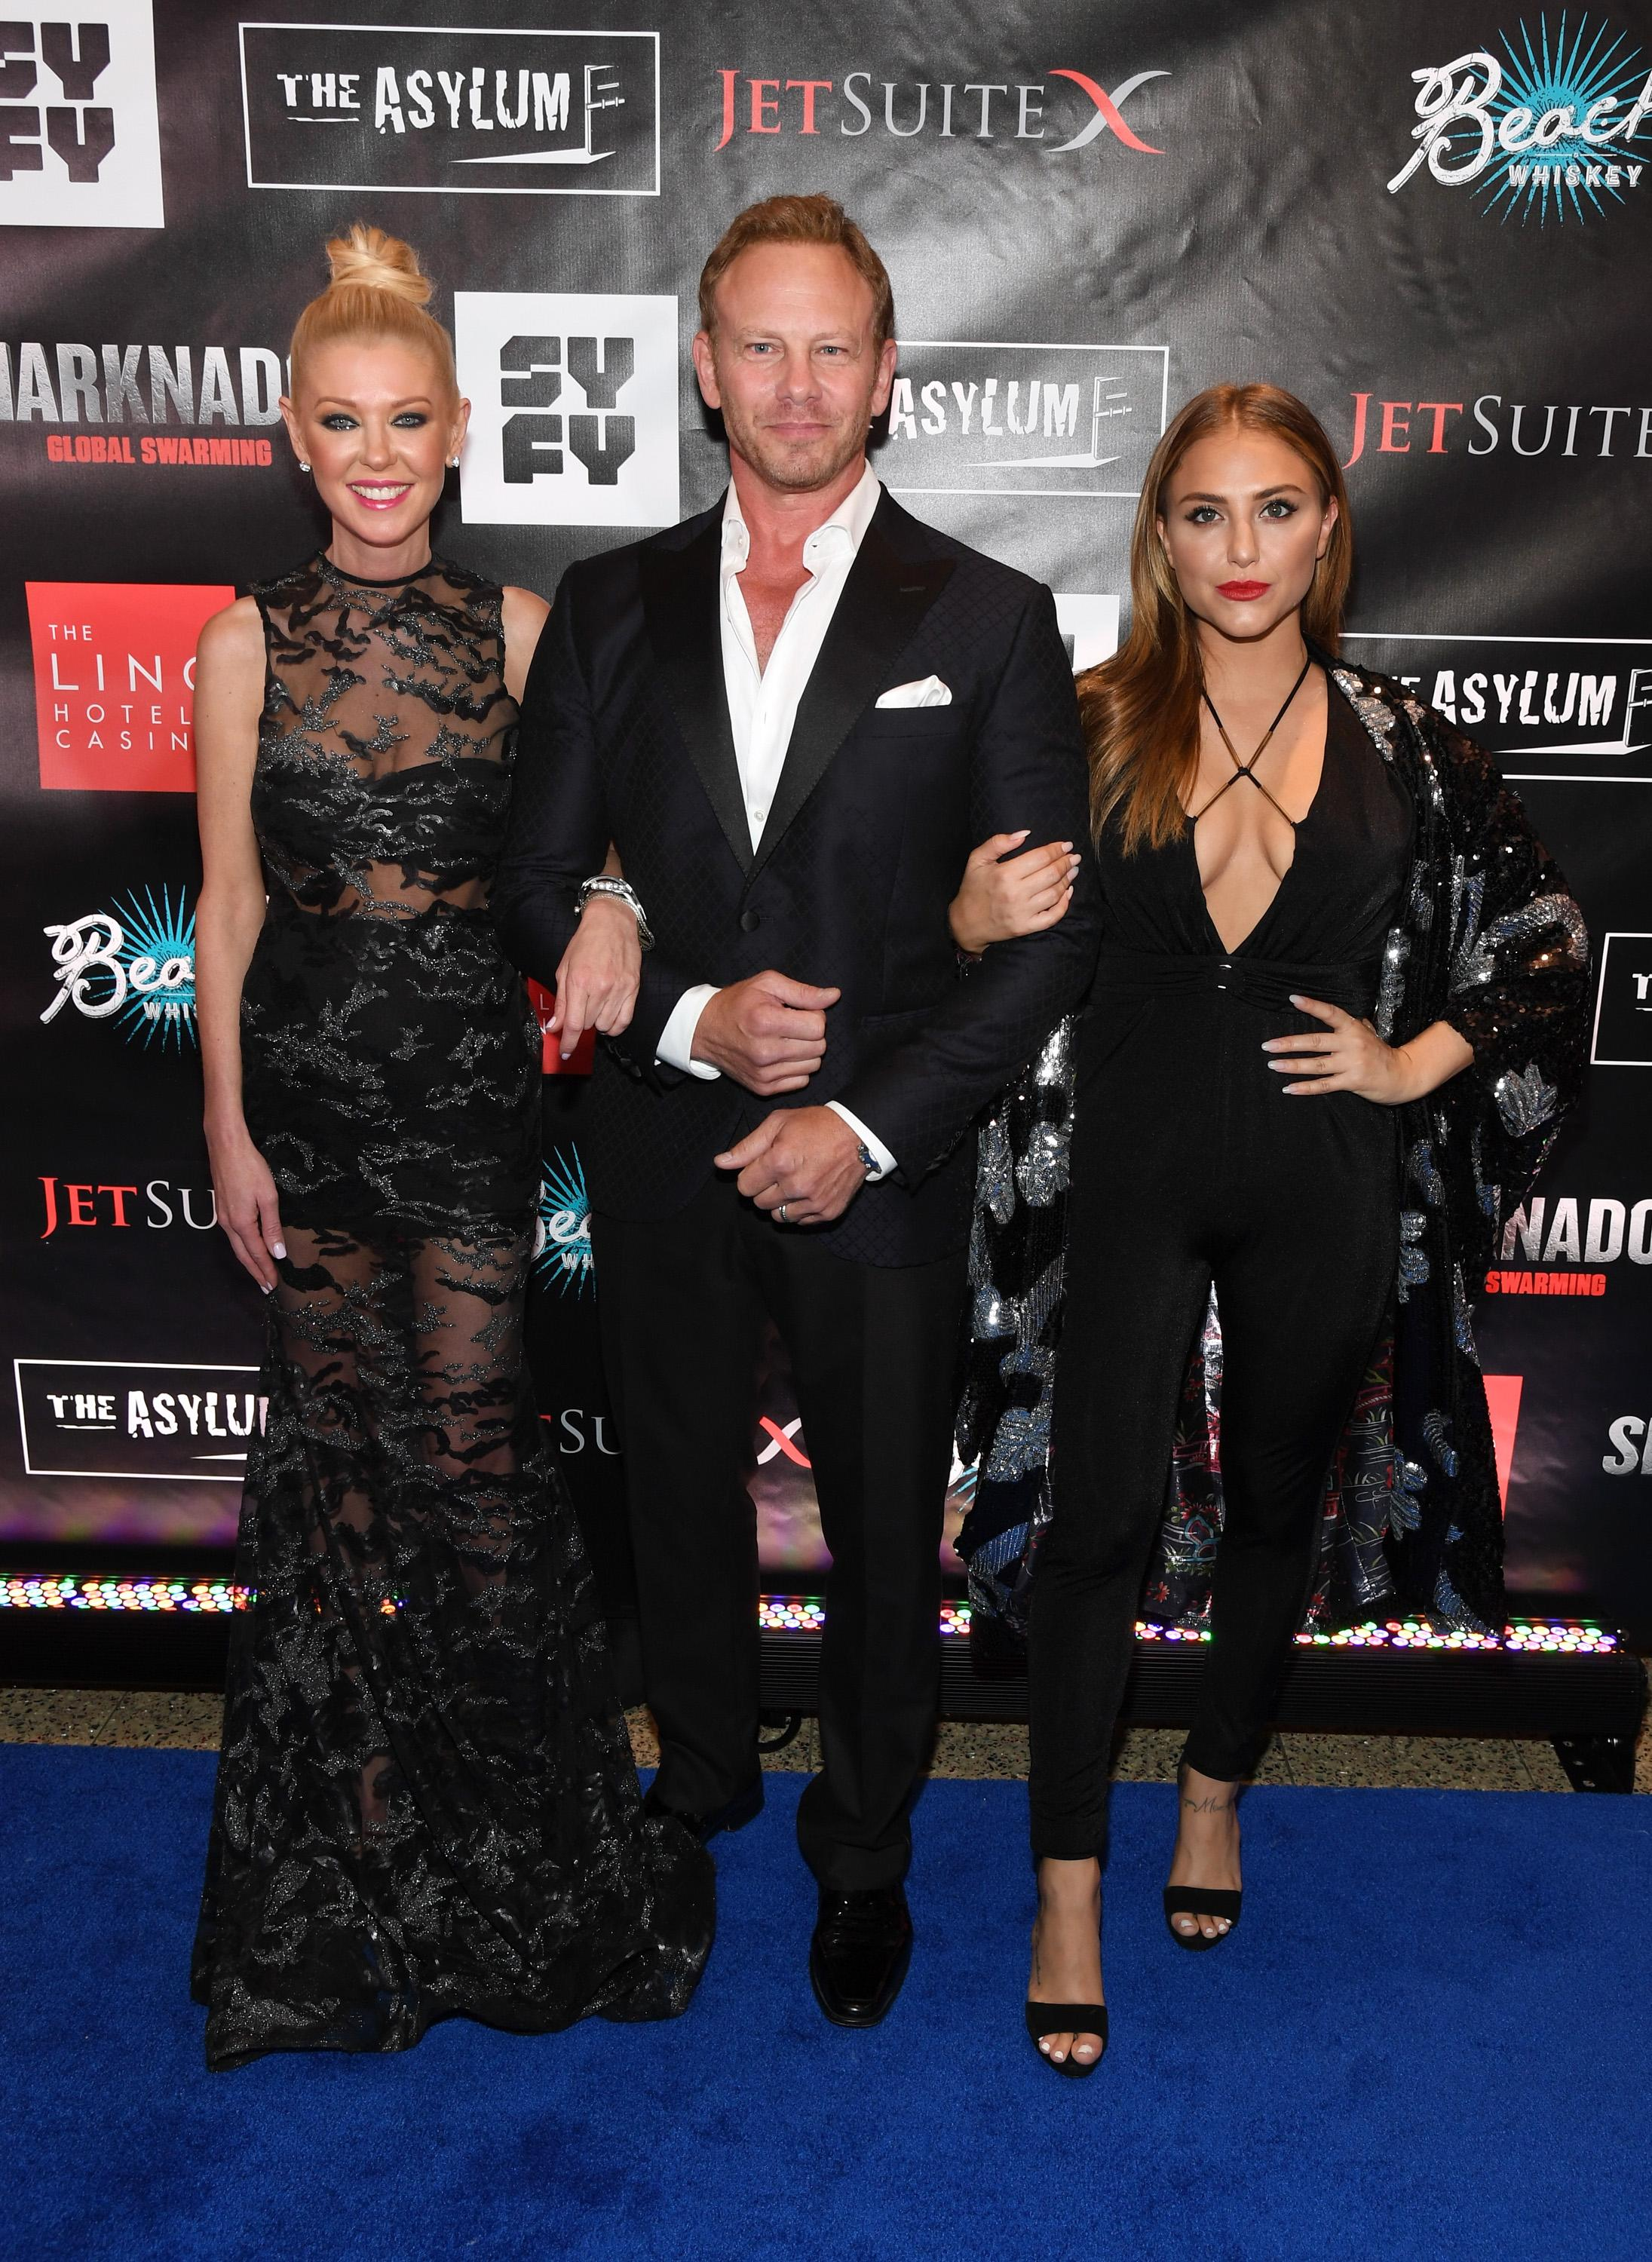 "LAS VEGAS, NV - AUGUST 06:  (L-R) Actress Tara Reid, actor Ian Ziering and actress Cassie Scerbo attend the premiere of ""Sharknado 5: Global Swarming"" at The LINQ Hotel & Casino on August 6, 2017 in Las Vegas, Nevada.  (Photo by Ethan Miller/Getty Images for Caesars Entertainment )"